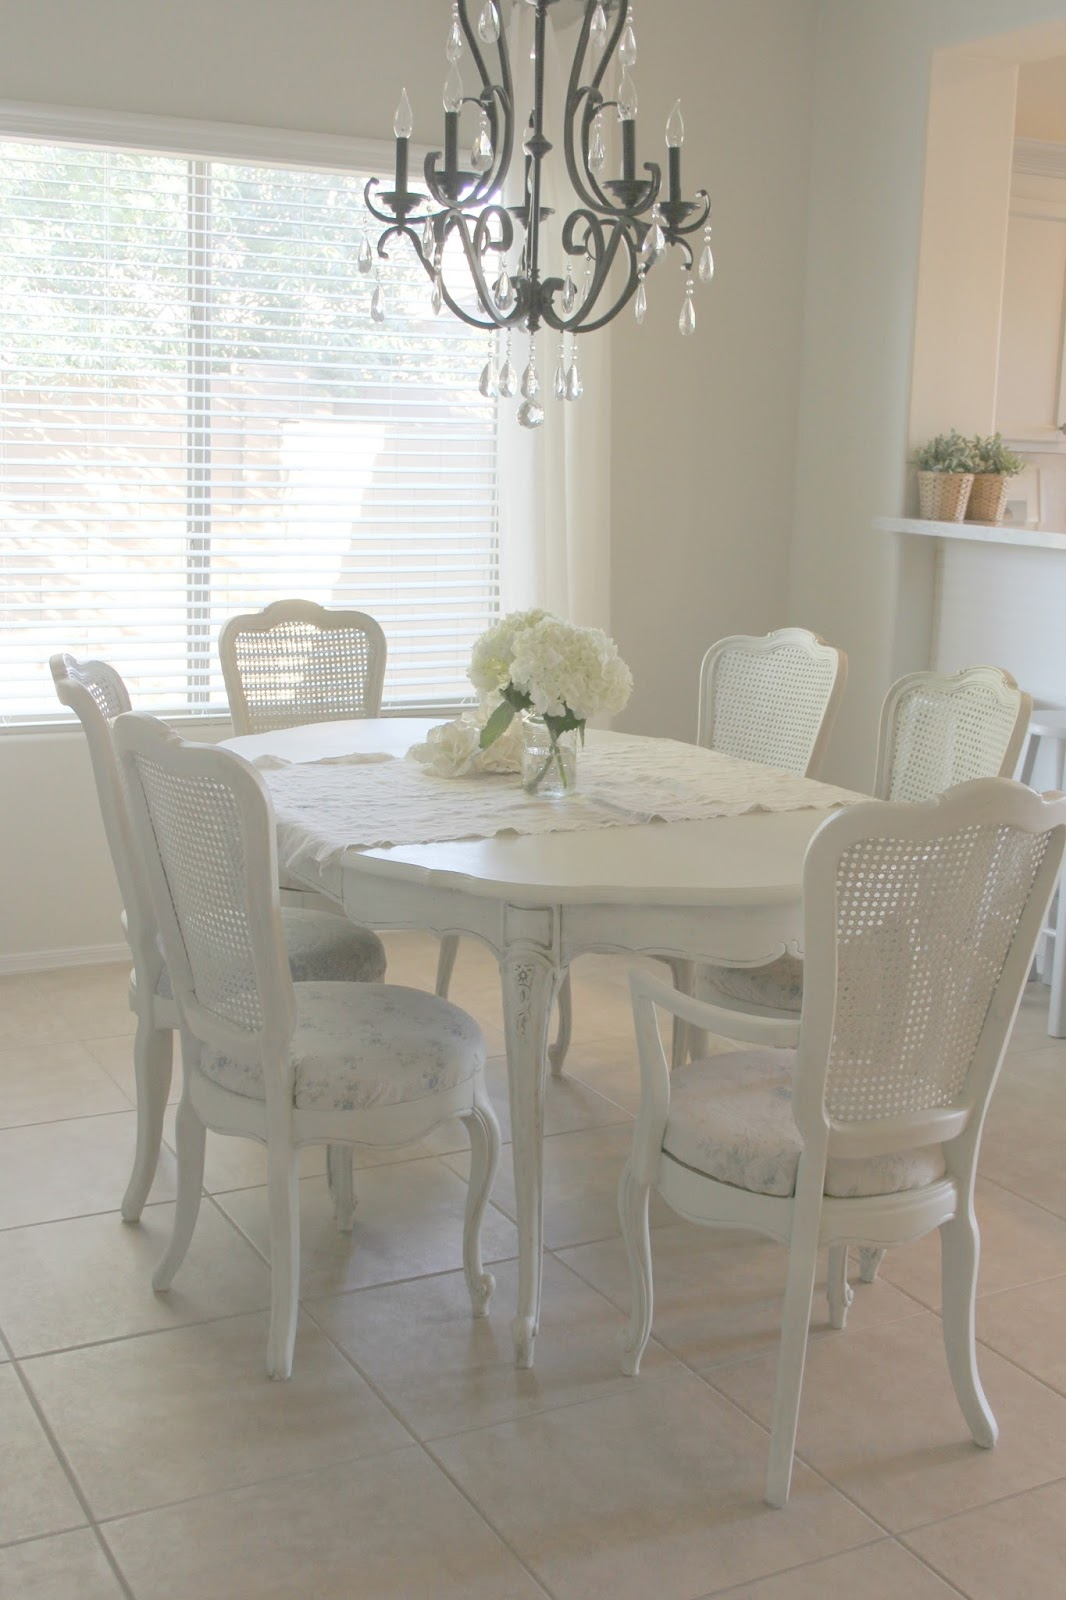 Beautiful shabby chic style dining set with linen covered chairs by Hello Lovely Studio